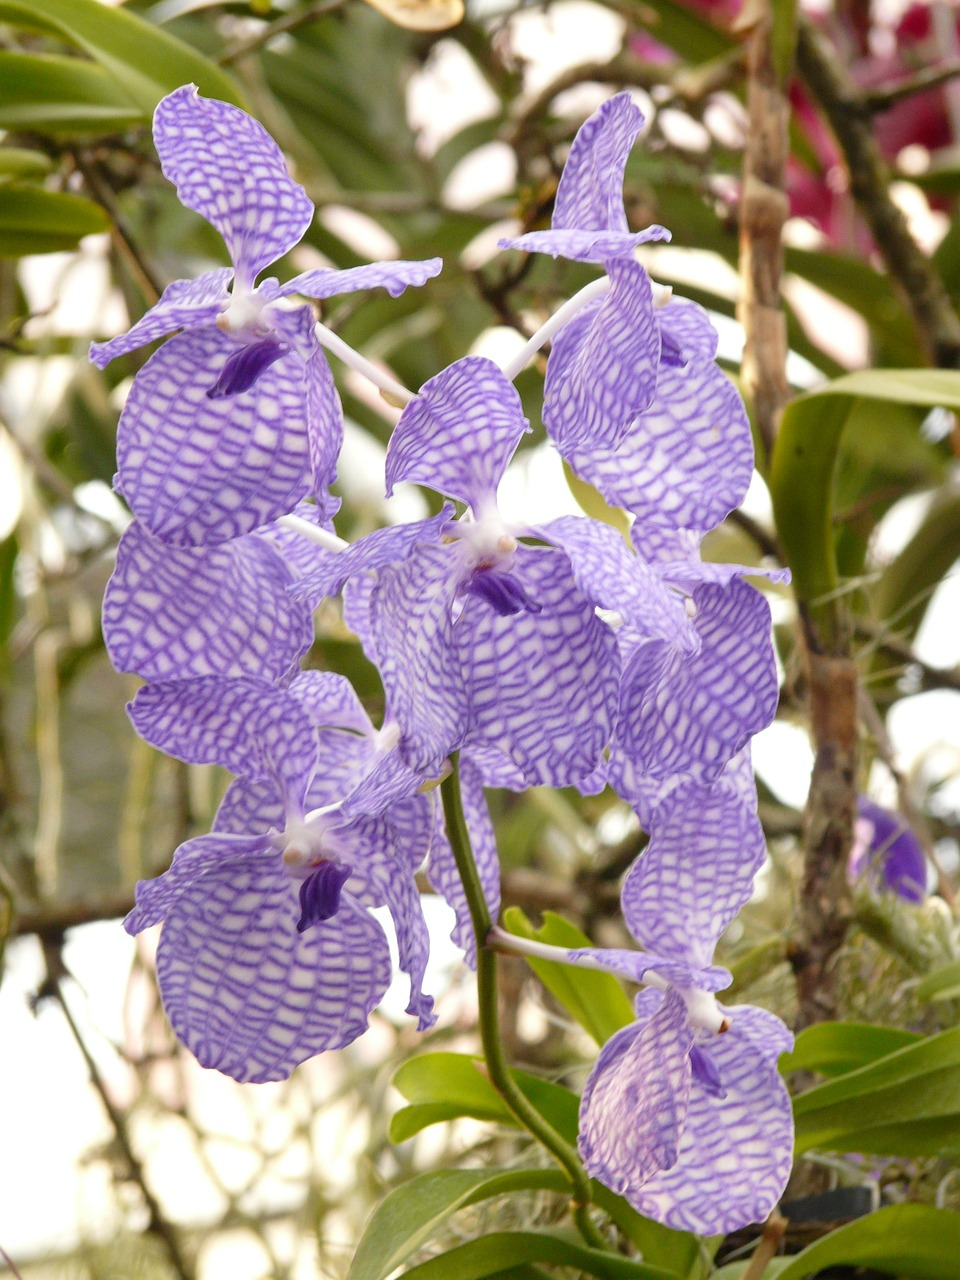 blue vanda orchid,orchid,blue,flower,blossom,bloom,plant,tropical,exotic,strong,color,vanda,free pictures, free photos, free images, royalty free, free illustrations, public domain